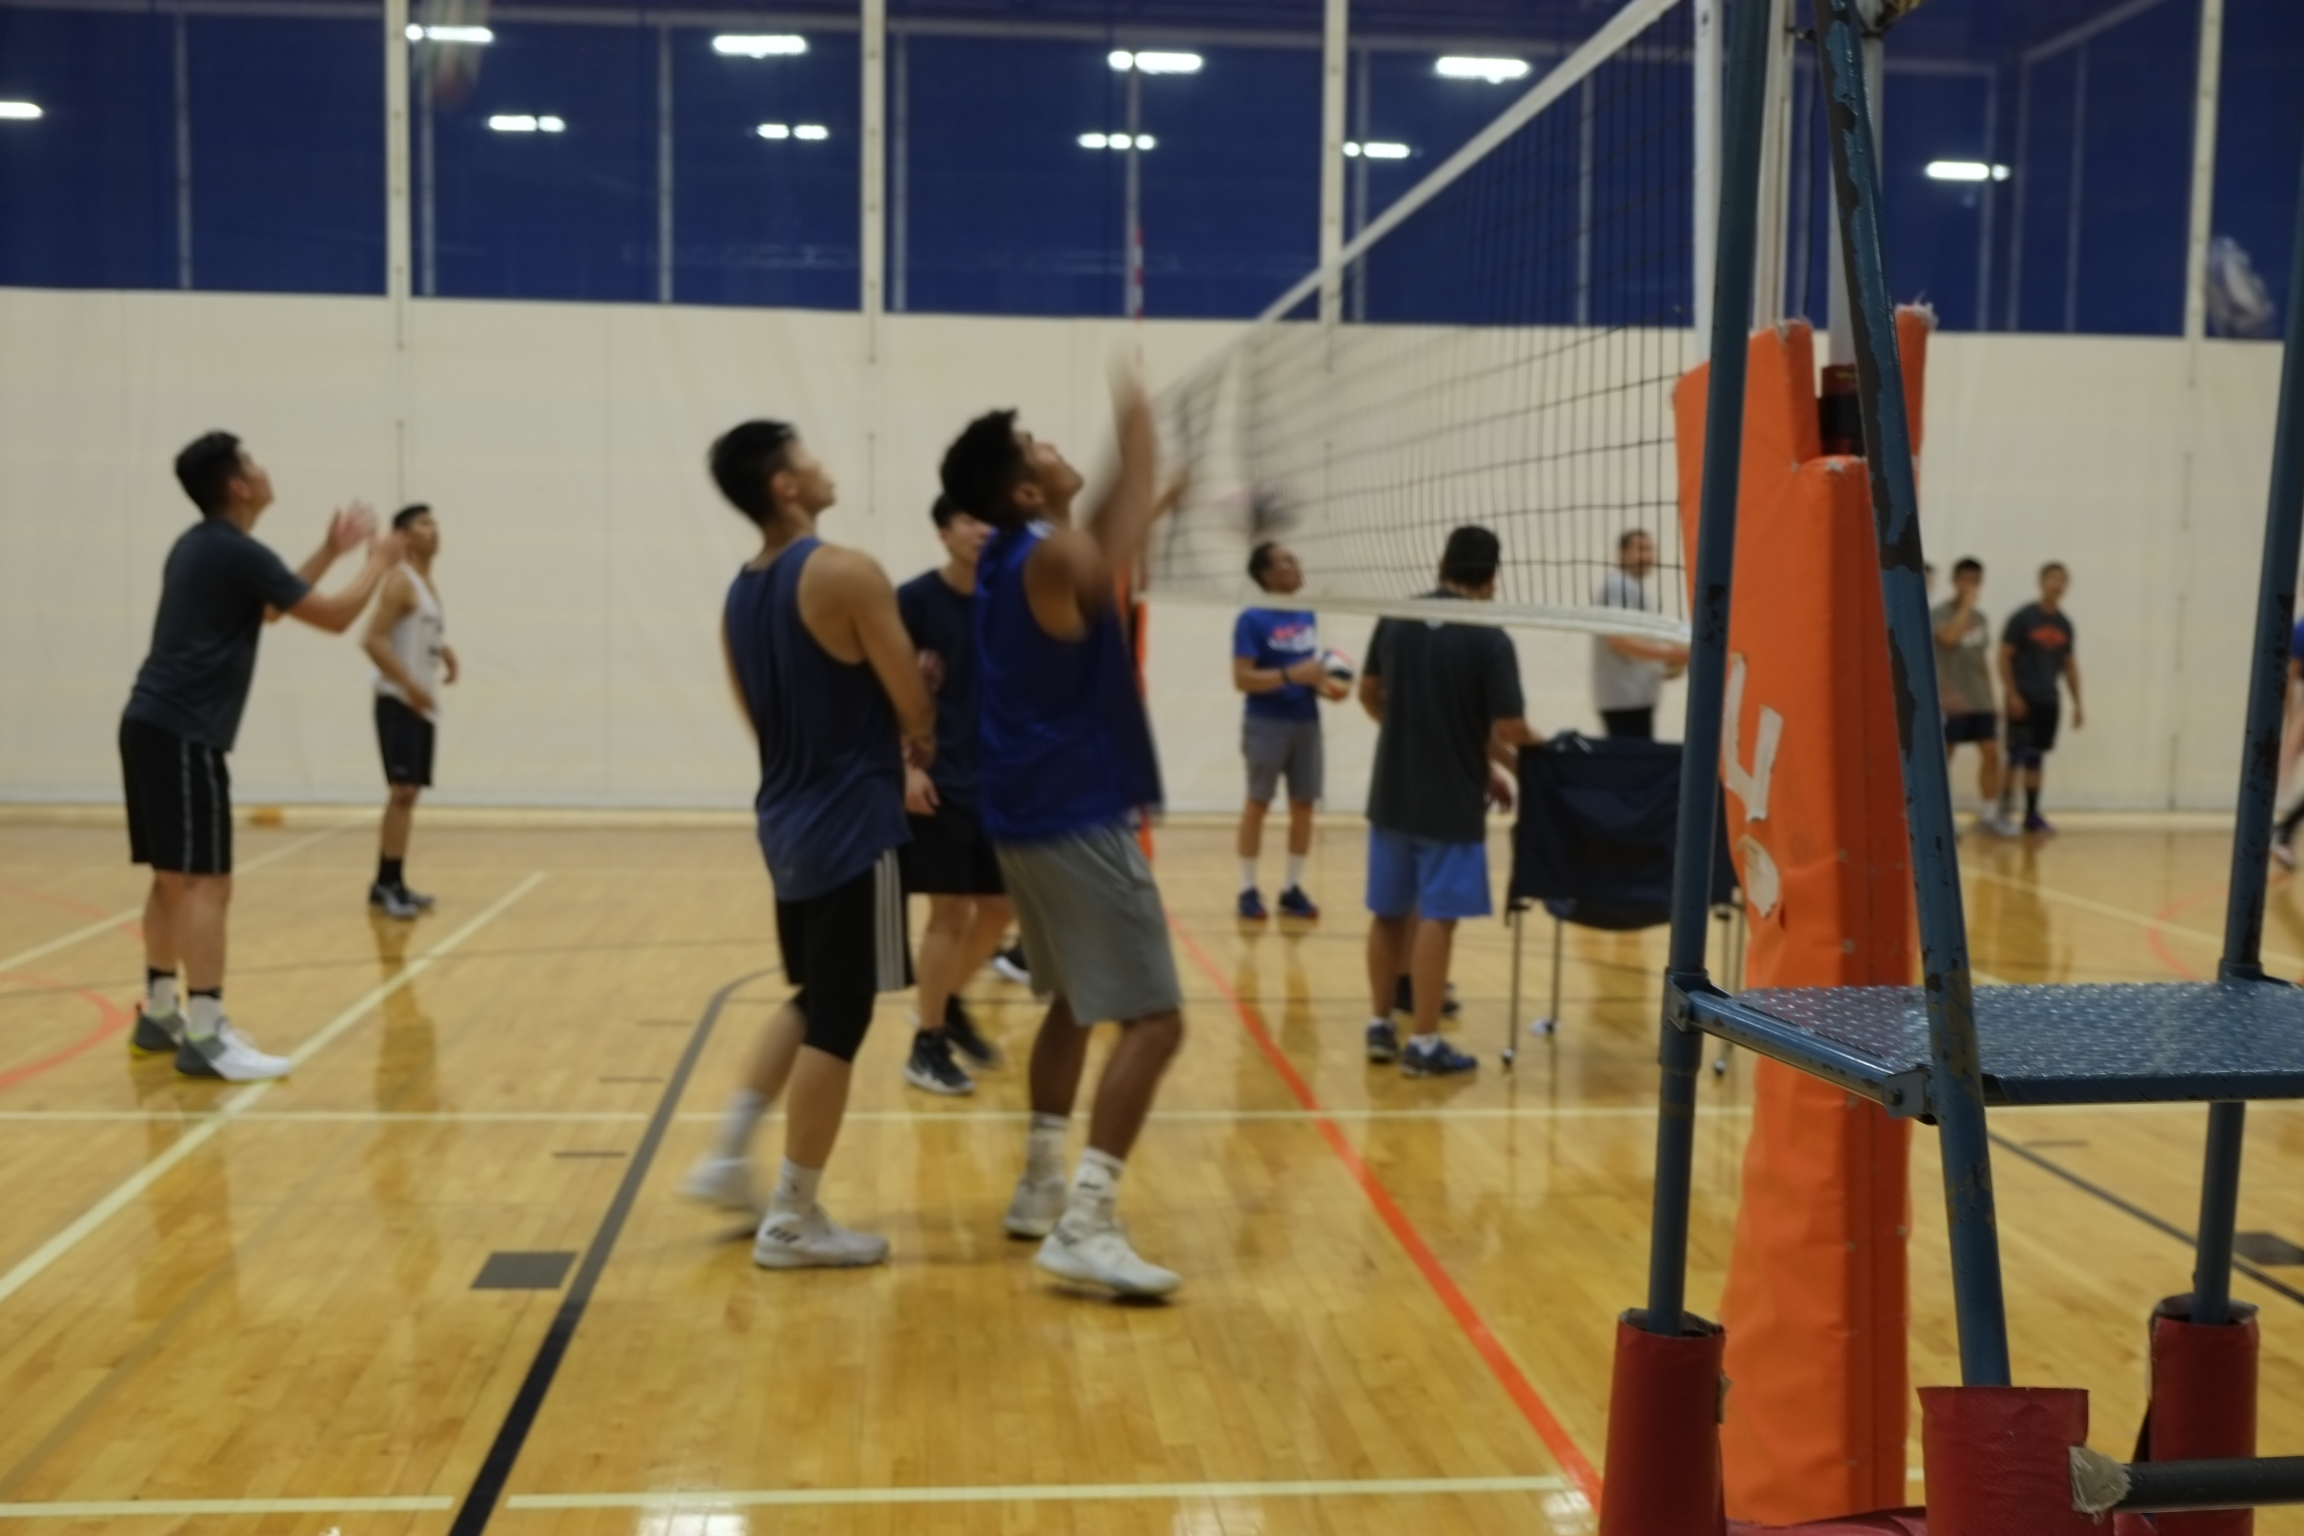 Asian men play a volleyball game in uniforms on a court